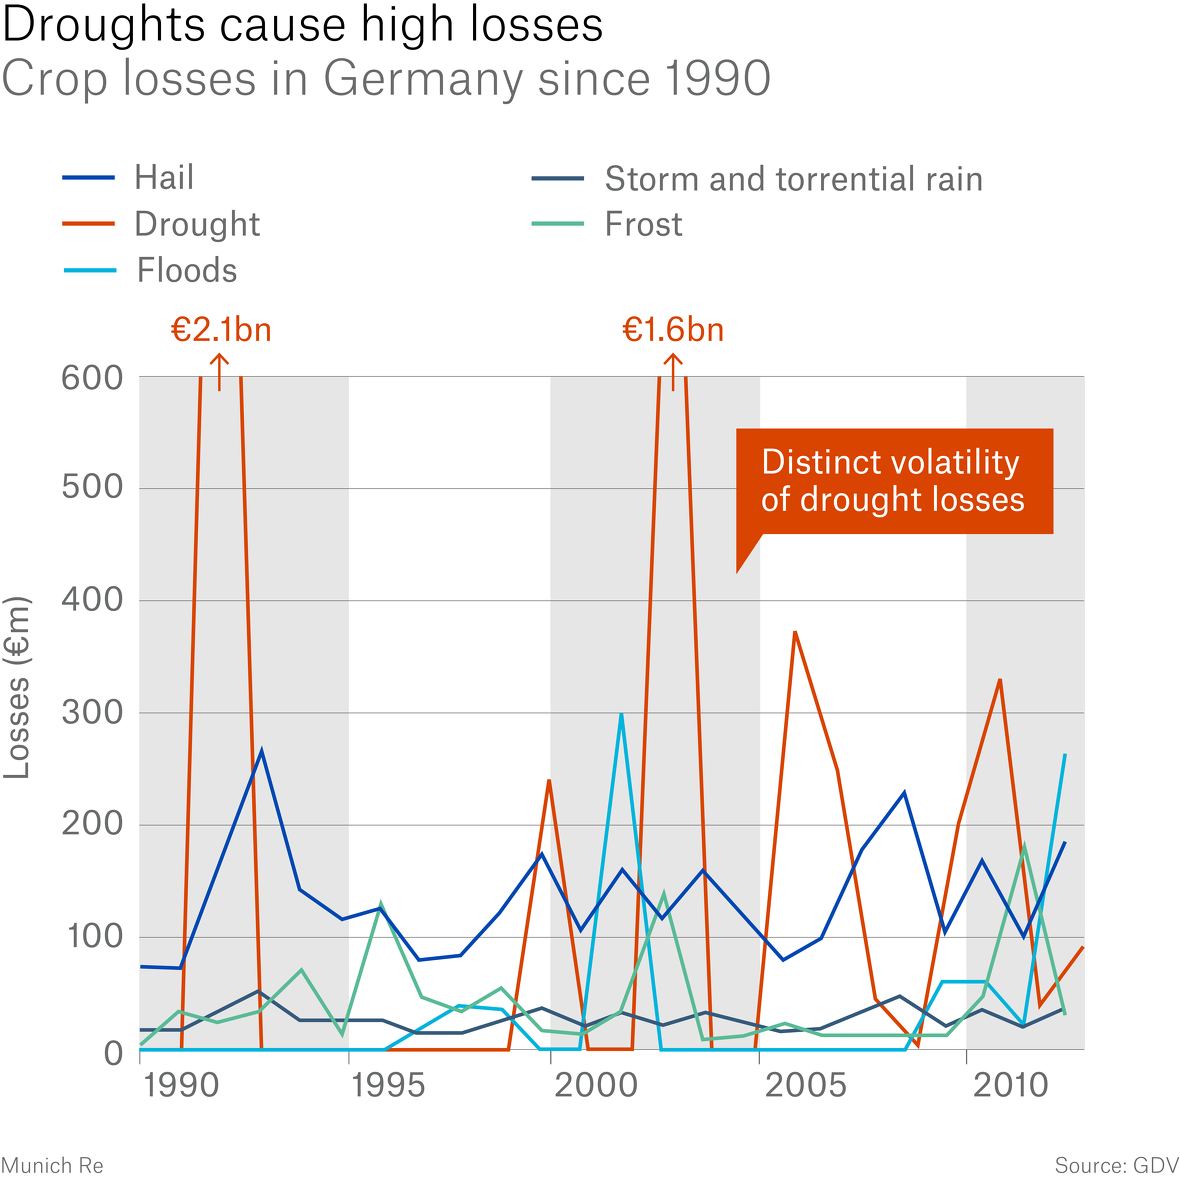 Comparatively high loss potential and distinct volatility of drought losses in Germany